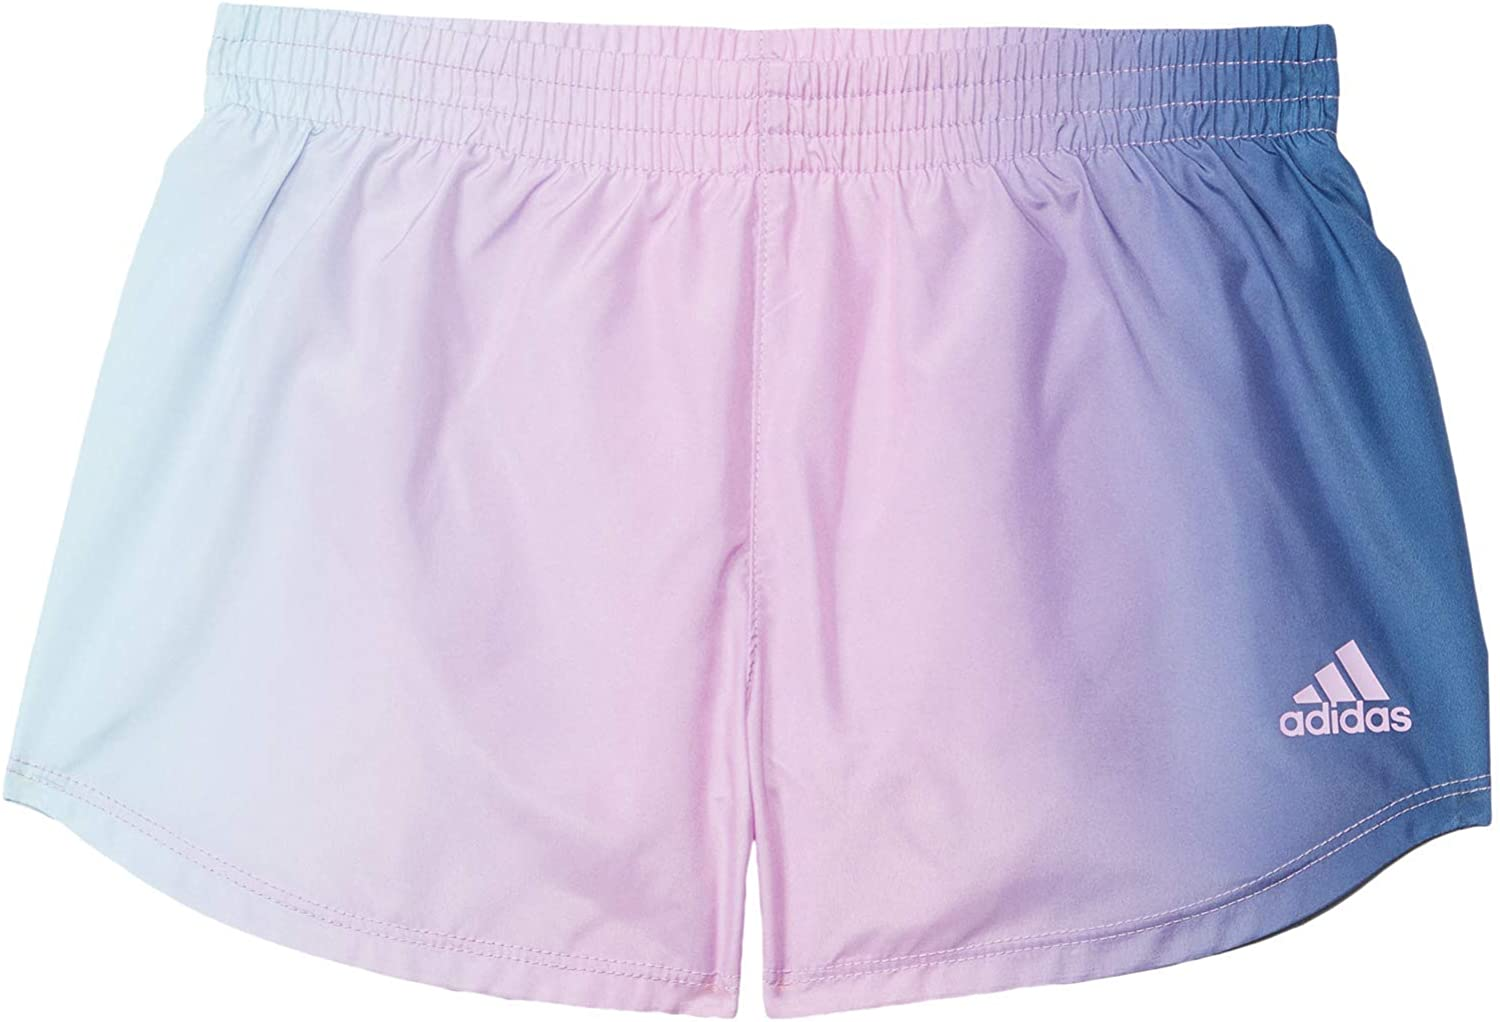 adidas Girl's Ombre Woven Shorts (Toddler/Little Kids)